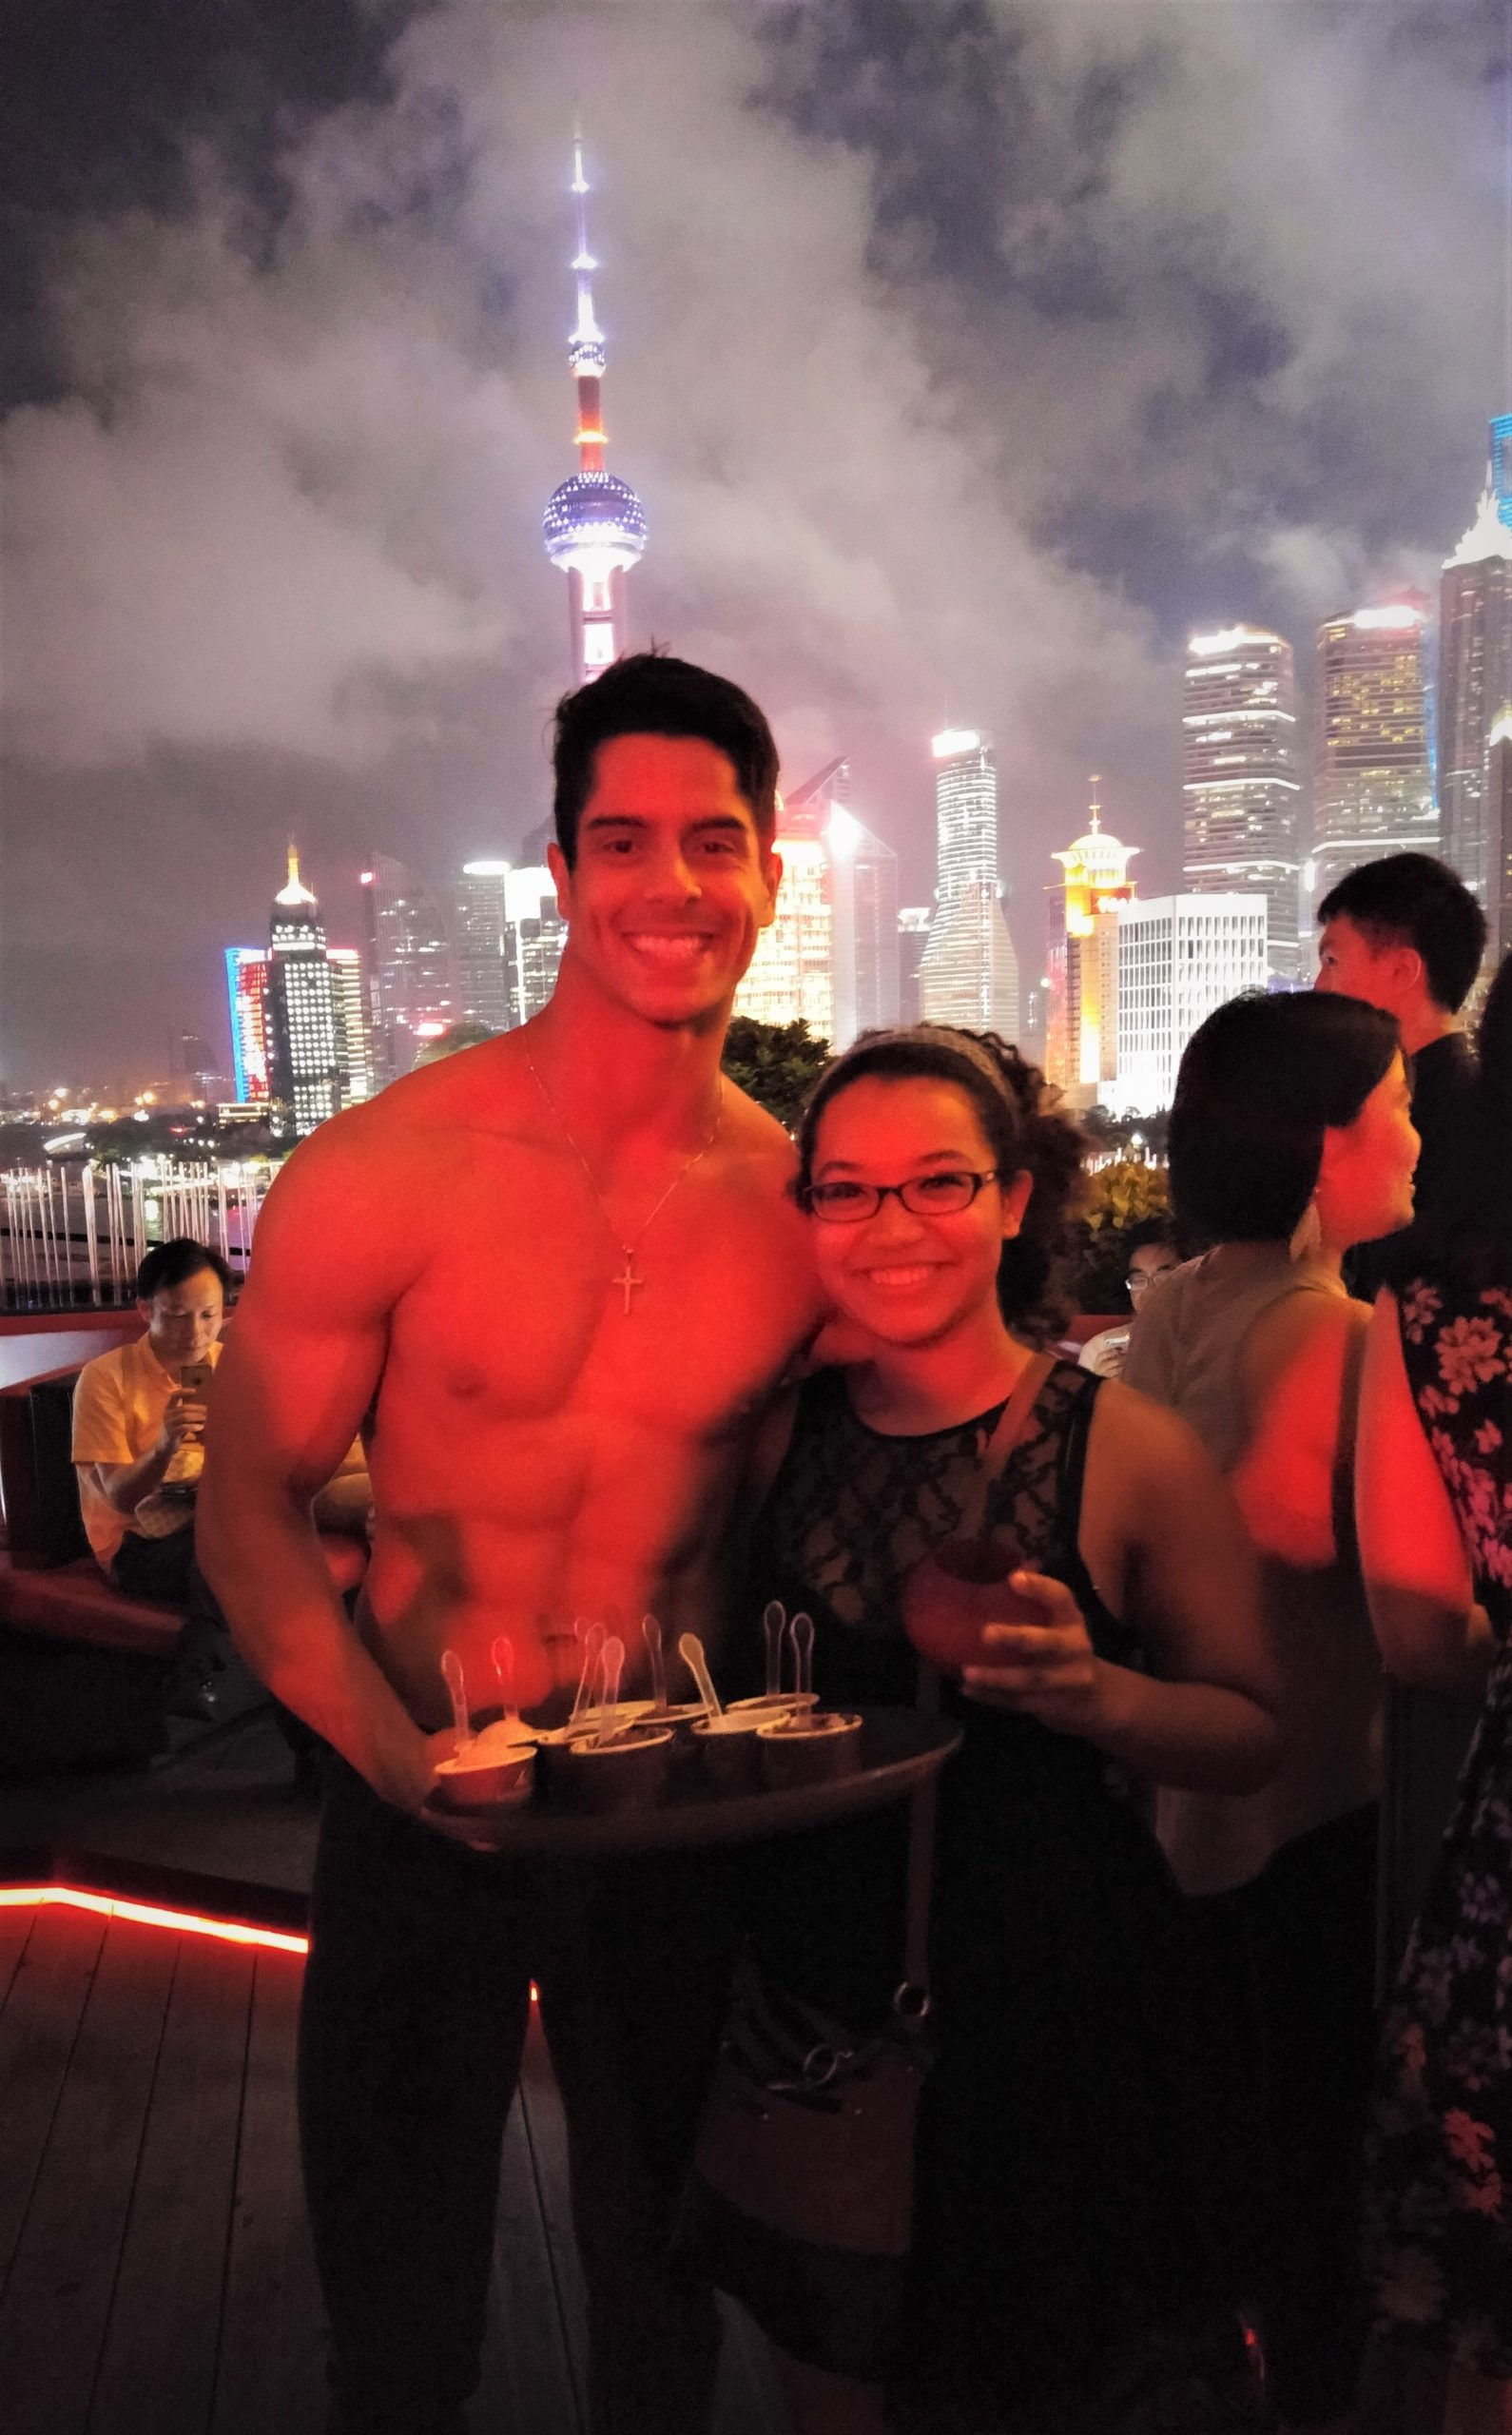 FREE COCKTAILS AND ICE CREAM IN CHINA?? YES PLEASE!